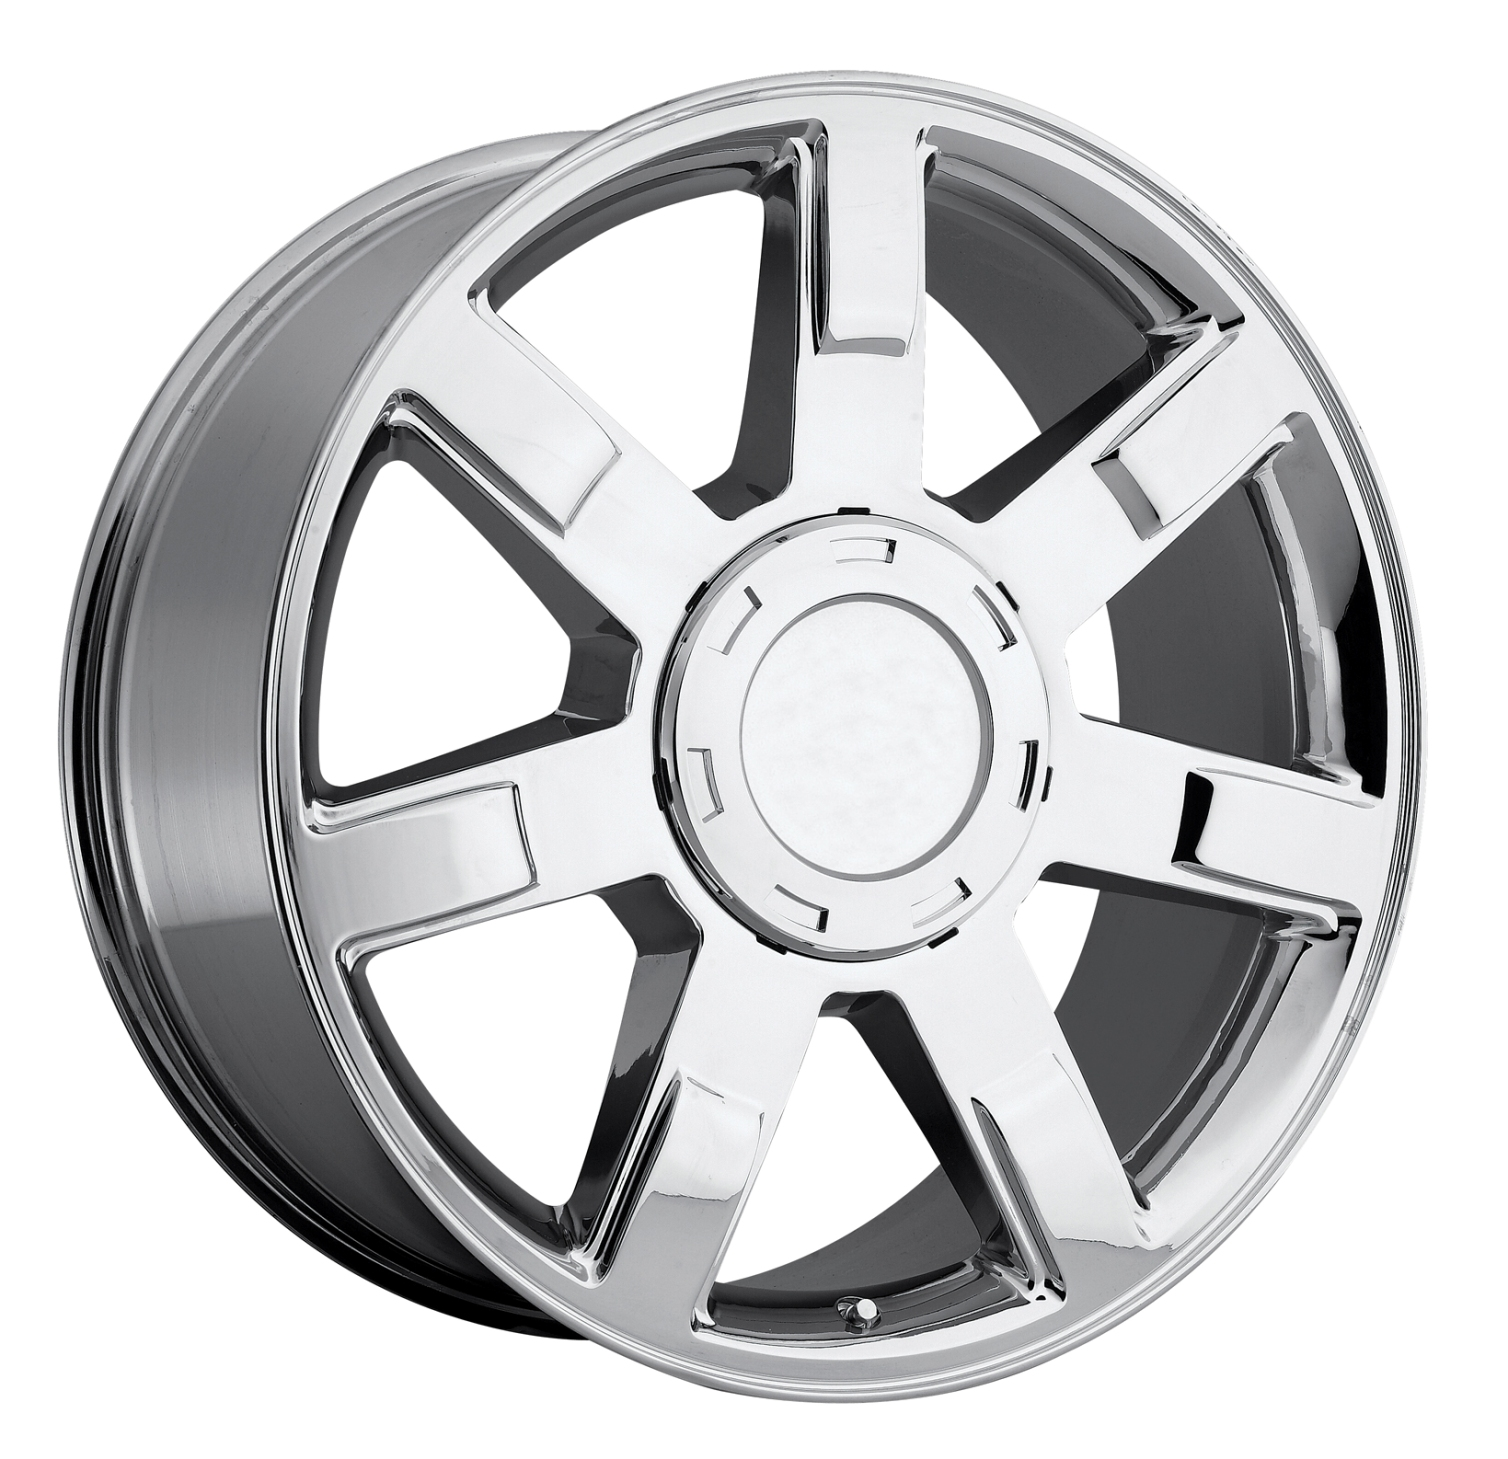 Cadillac Escalade 2007-2012 22x9 6x5.5 +31 - Wheel - Chrome With Cap